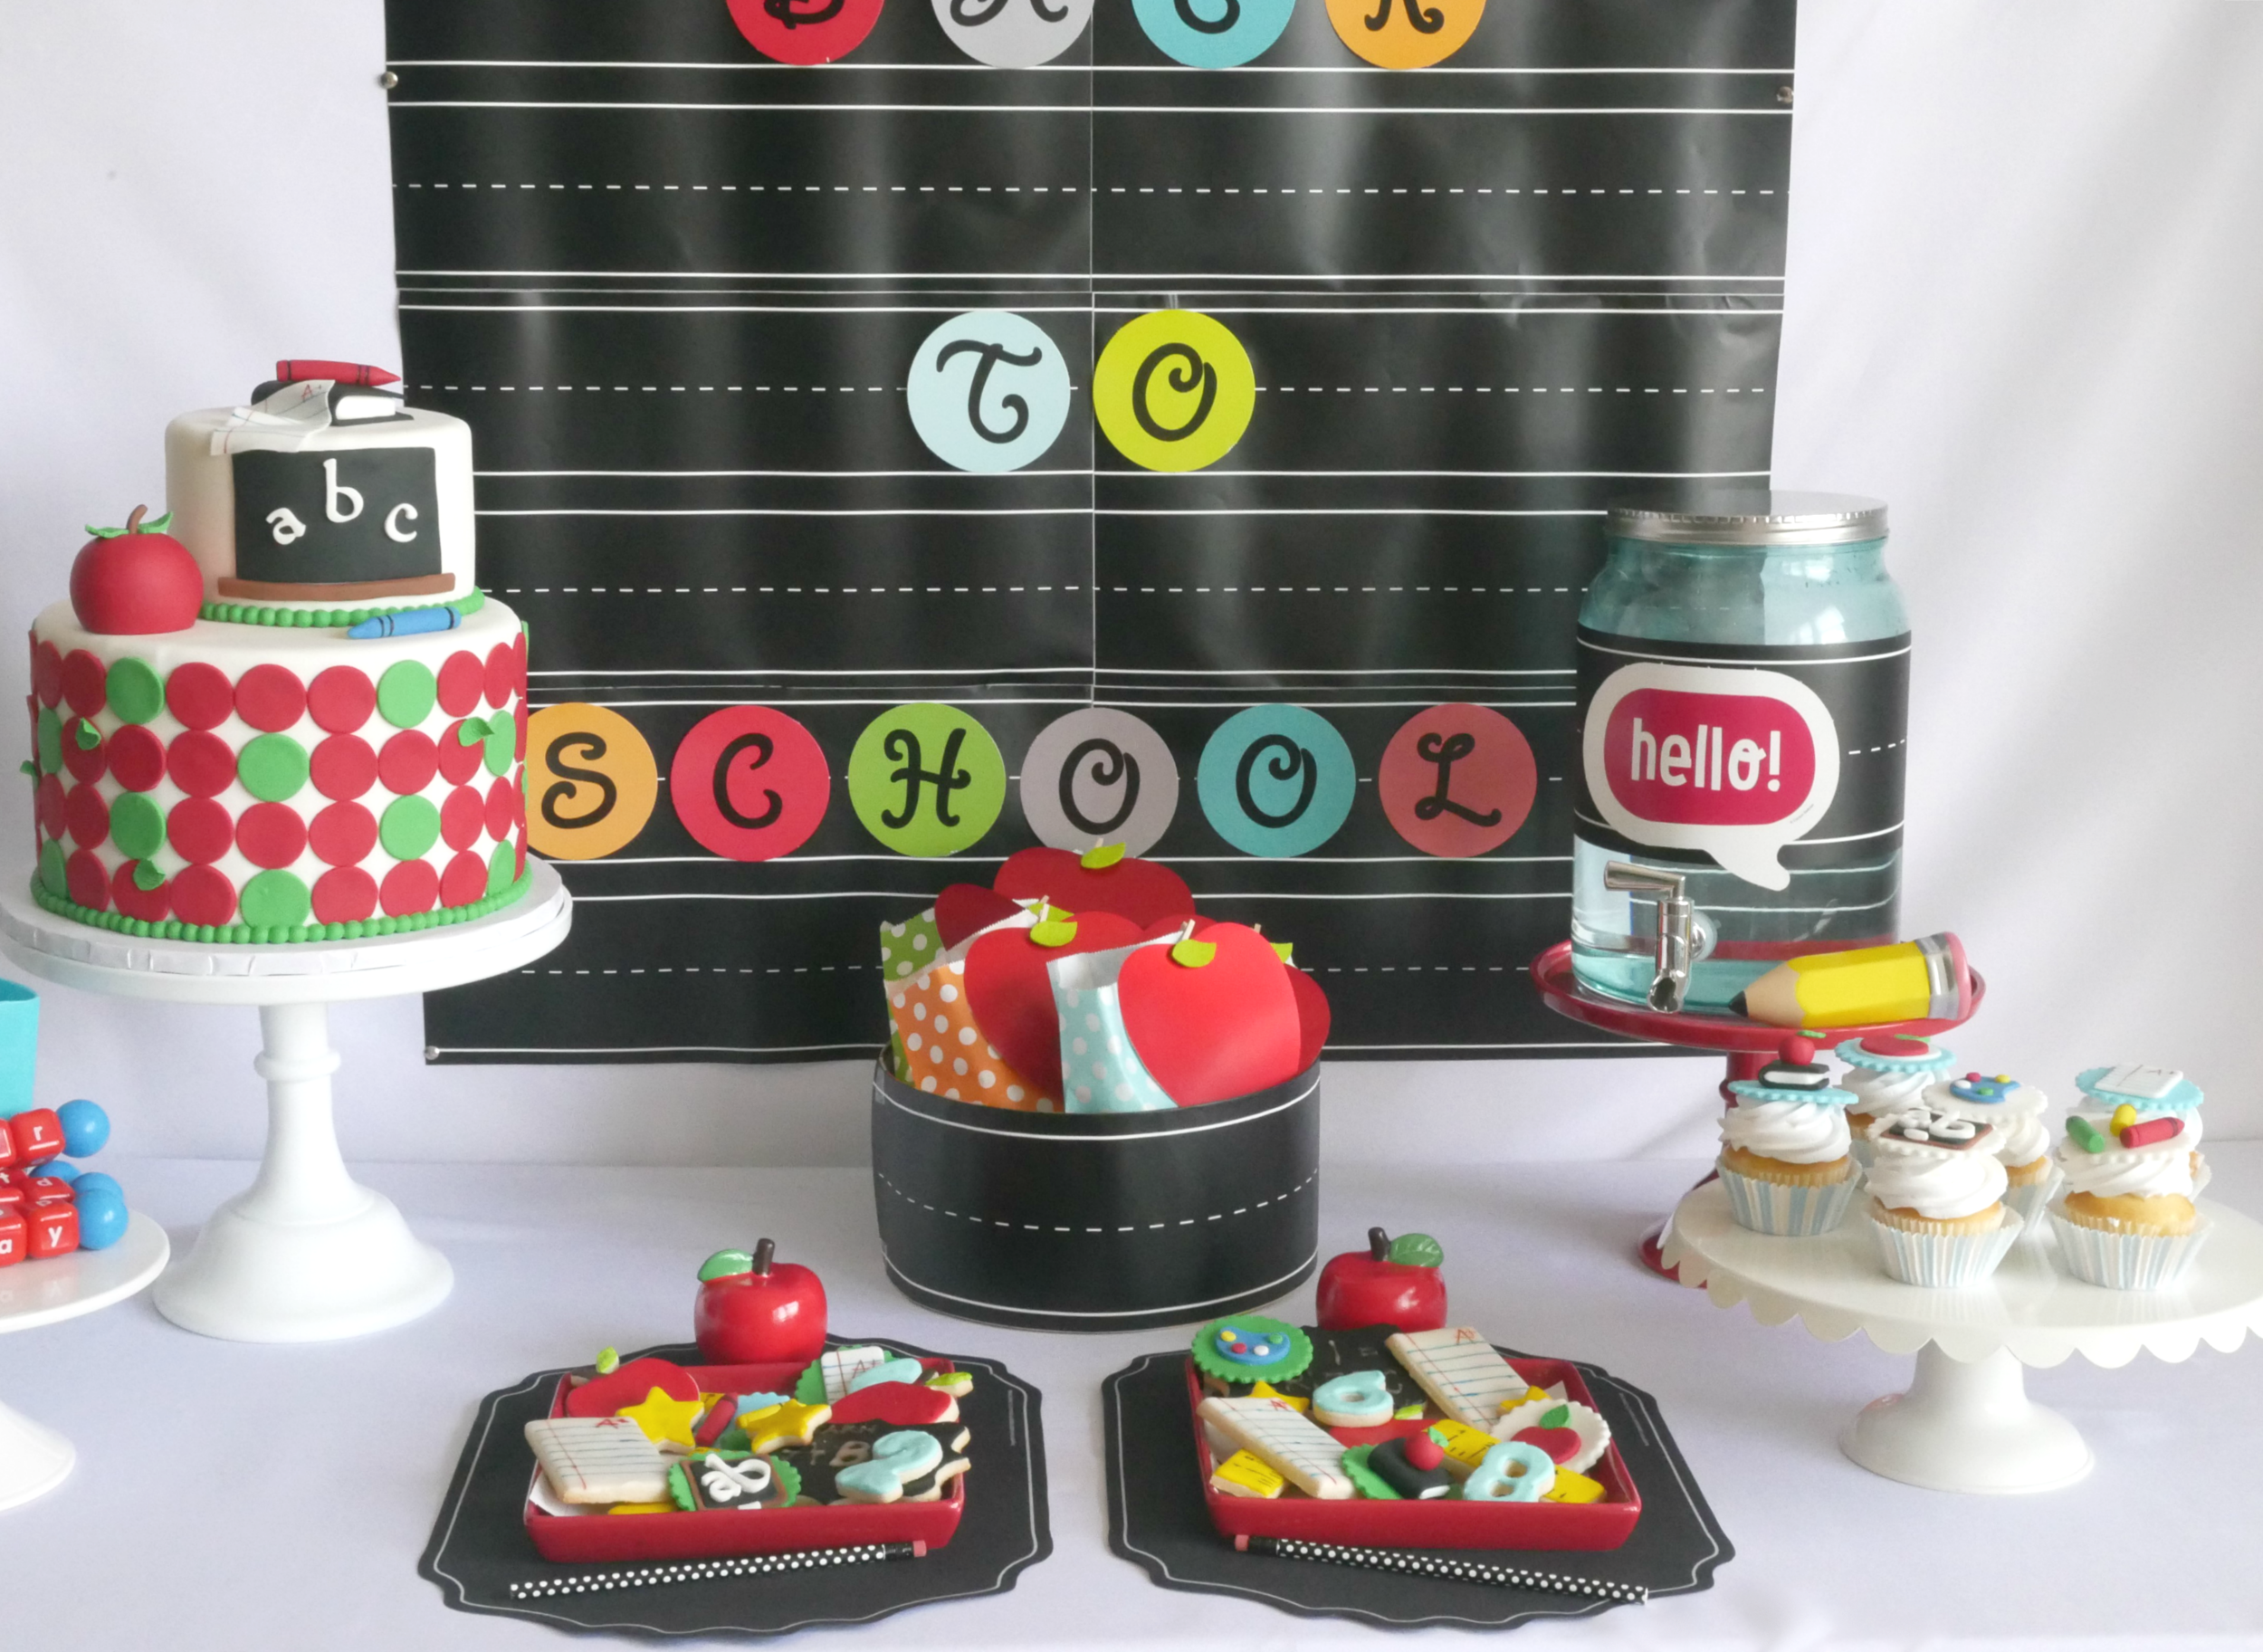 Bright and colorful dessert table at a back to school party. Love the chalkboard details, and all the adorable apple details. See all the back to school party details on Mint Event Design www.minteventdesign.com #backtoschool #backtoschoolideas #kidsparty #kidspartyideas #kidsparties #desserttable